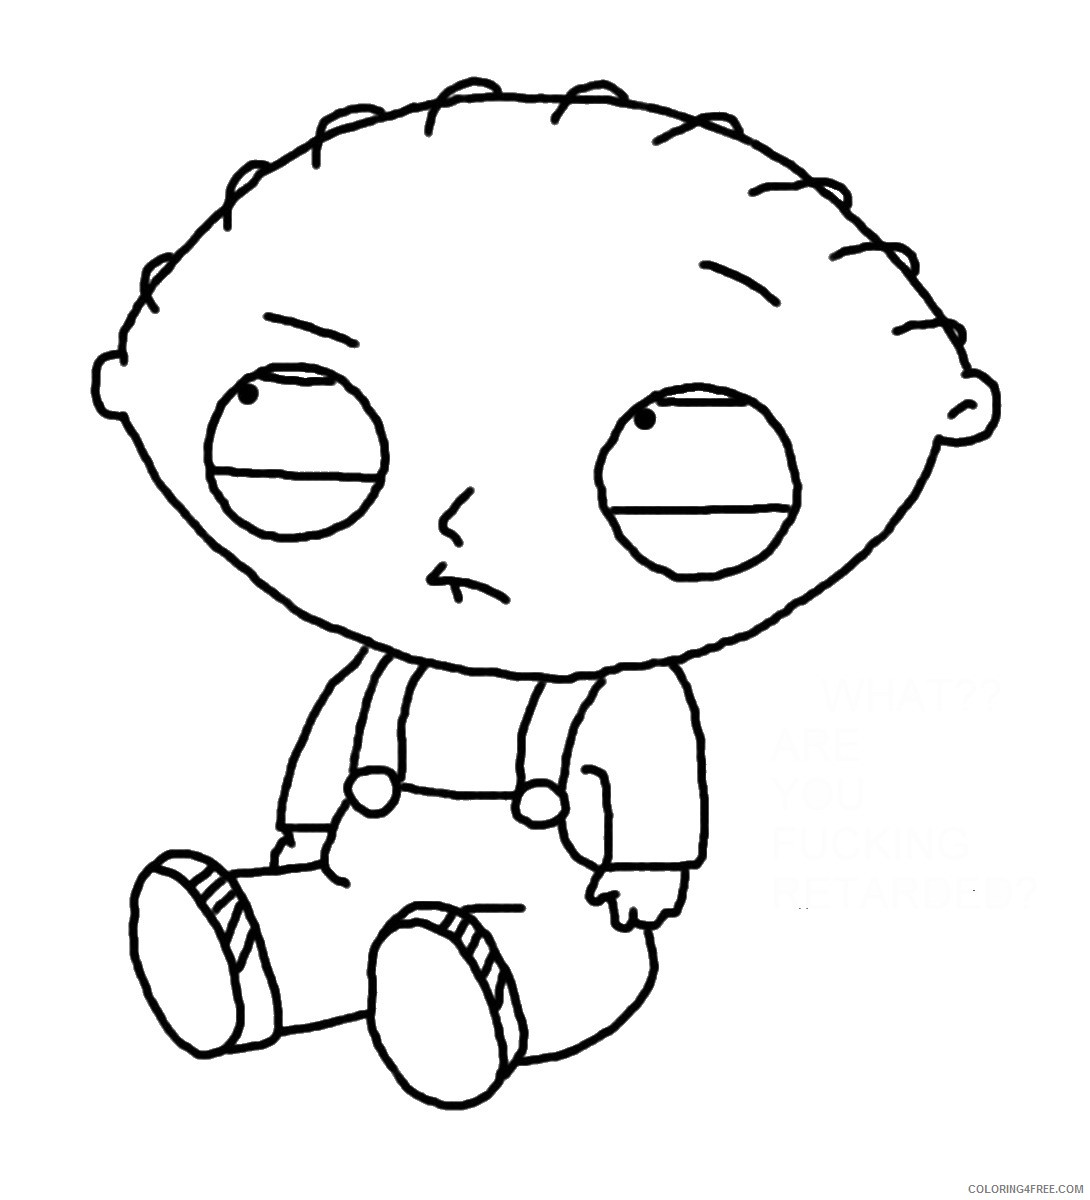 stewie griffin family guy coloring pages Coloring4free